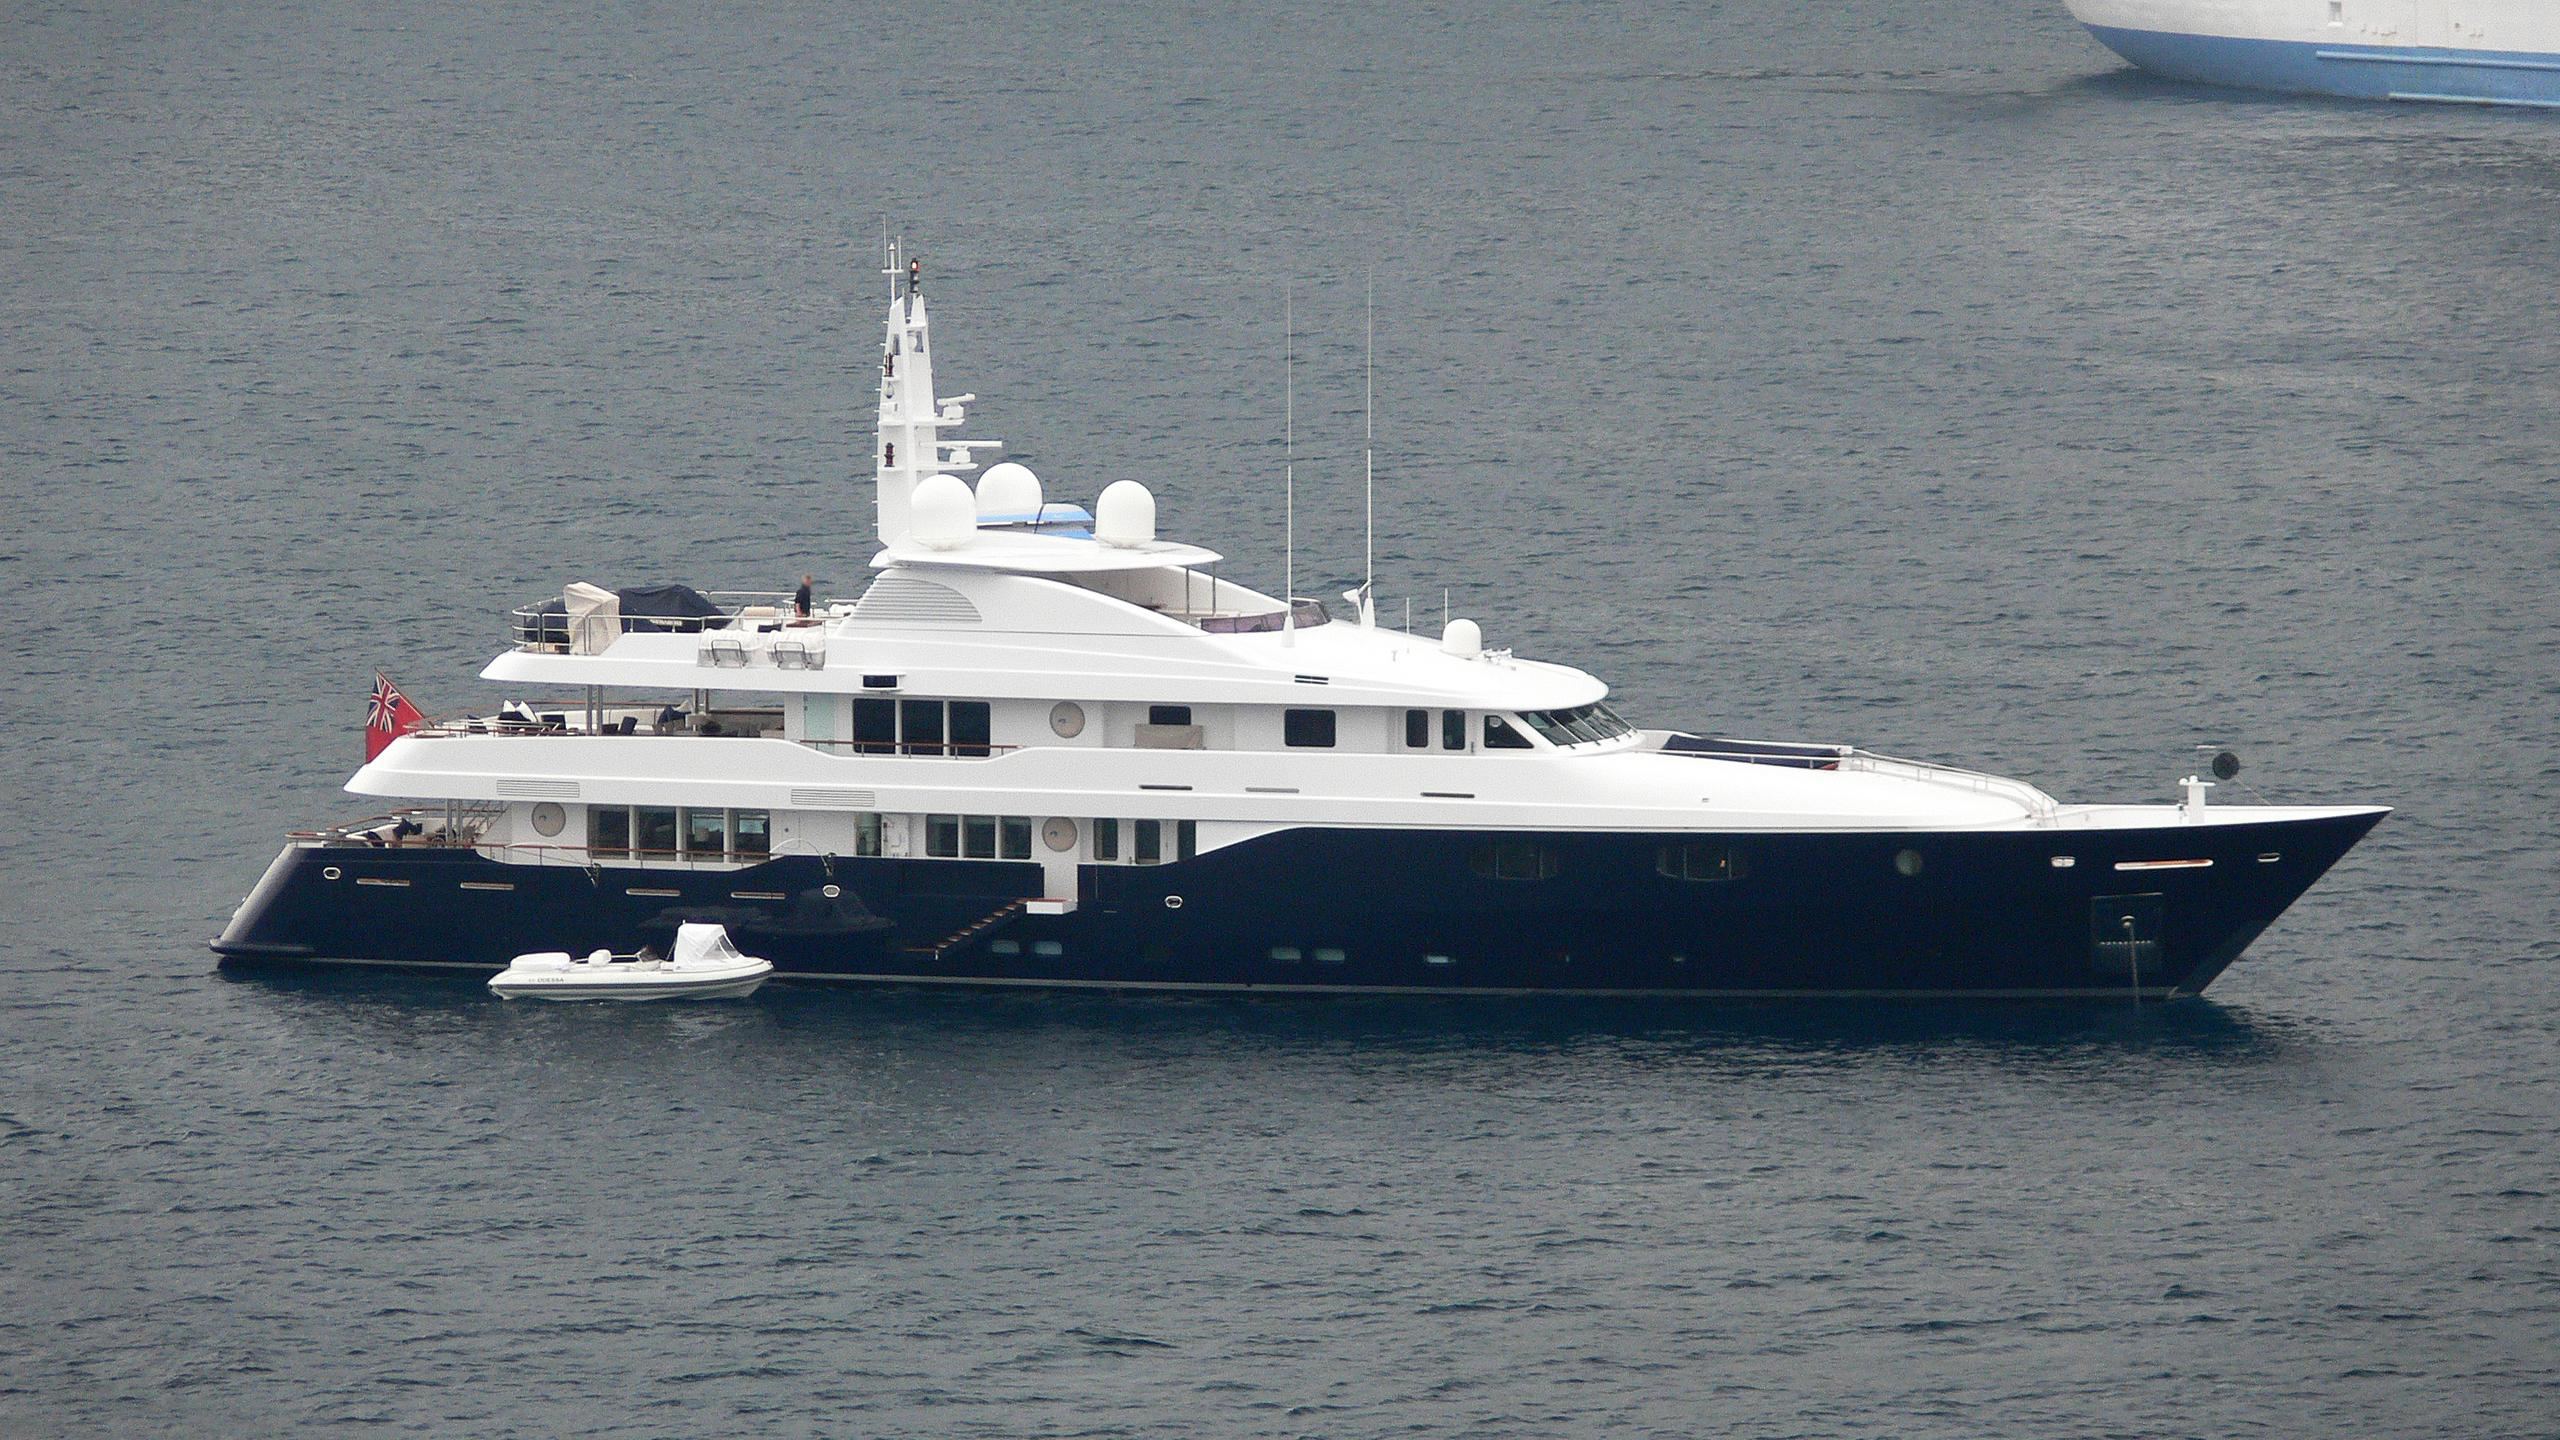 odessa-motor-yacht-turquoise-2007-50m-profile